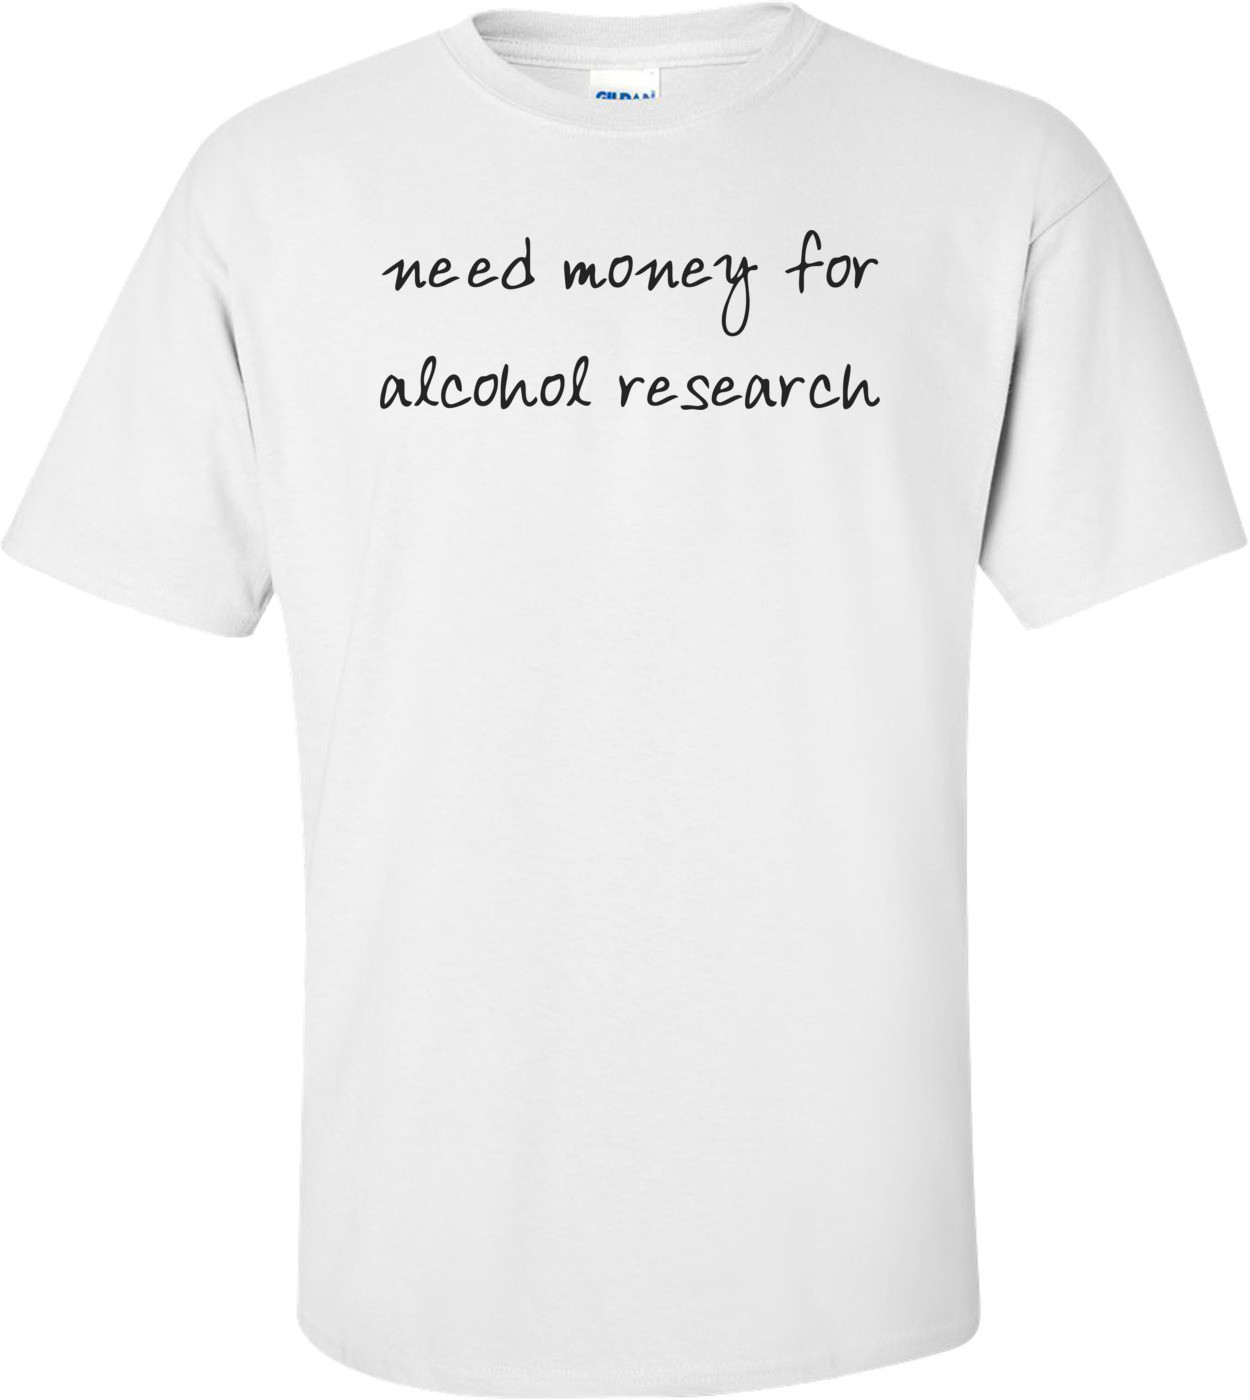 need money for alcohol research Shirt